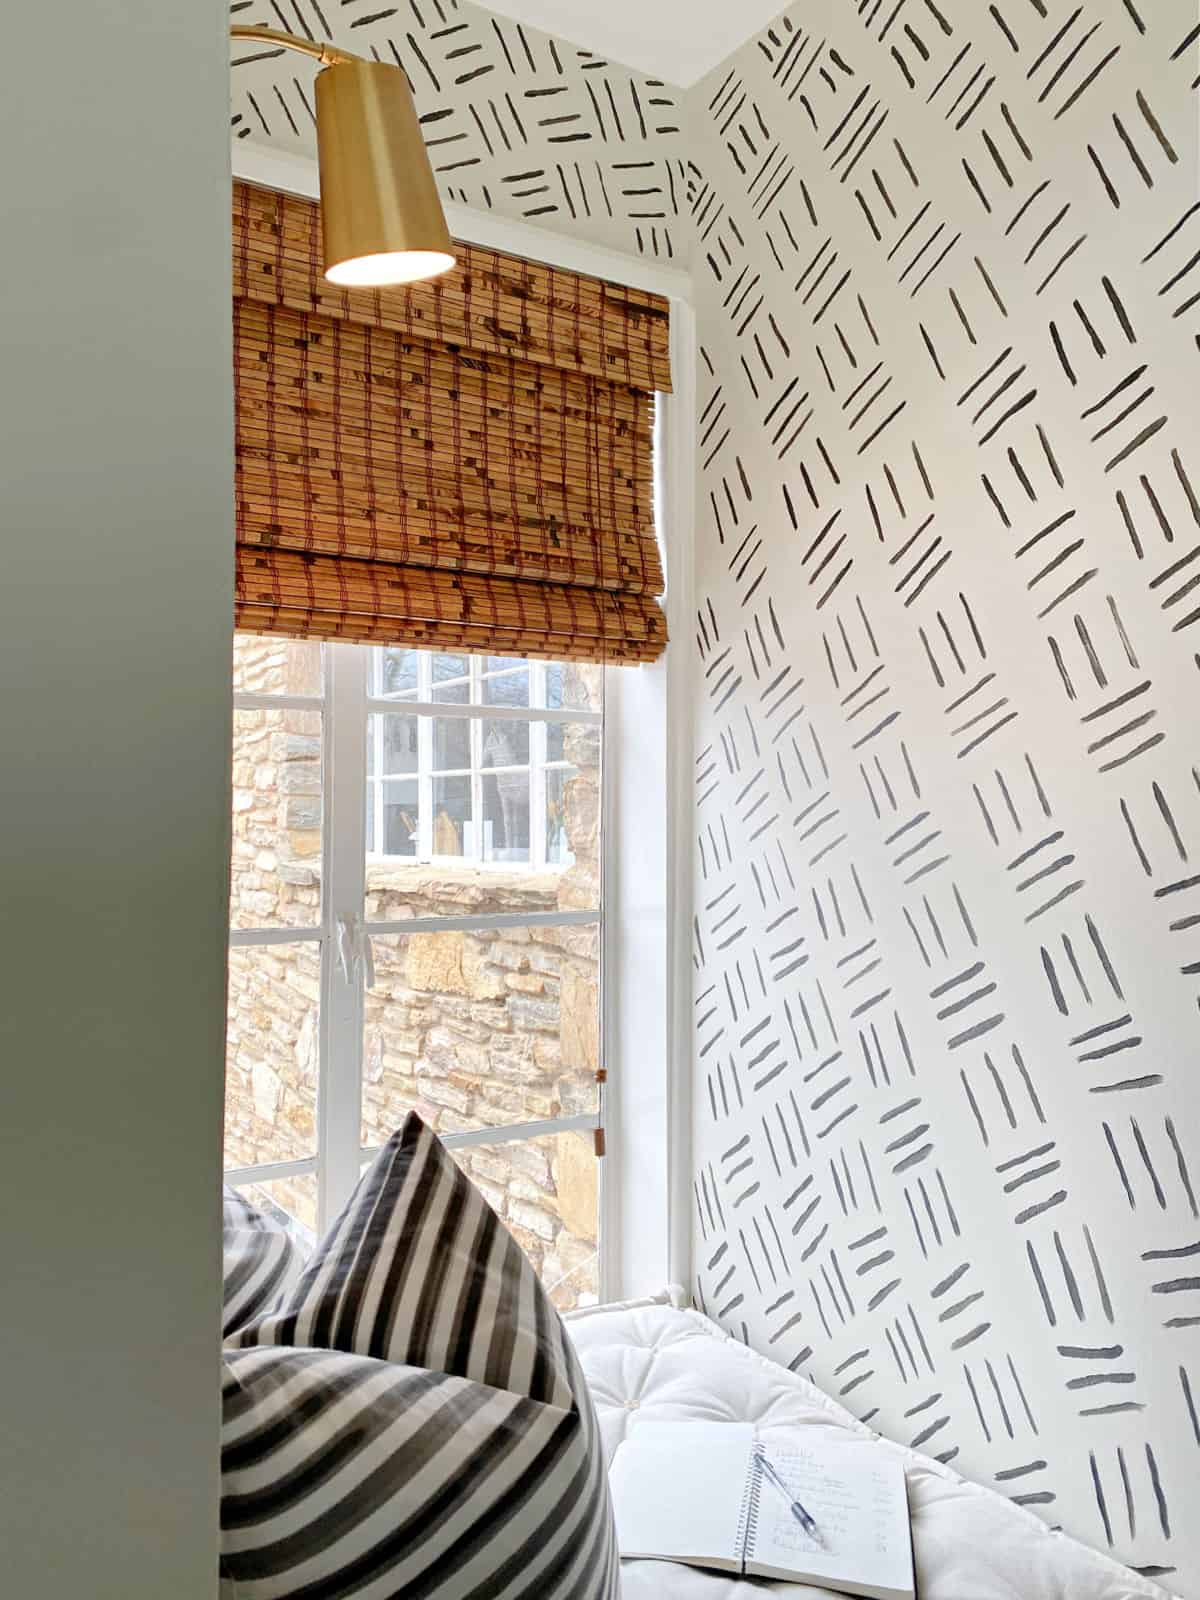 hand-painted accent walls in window nook